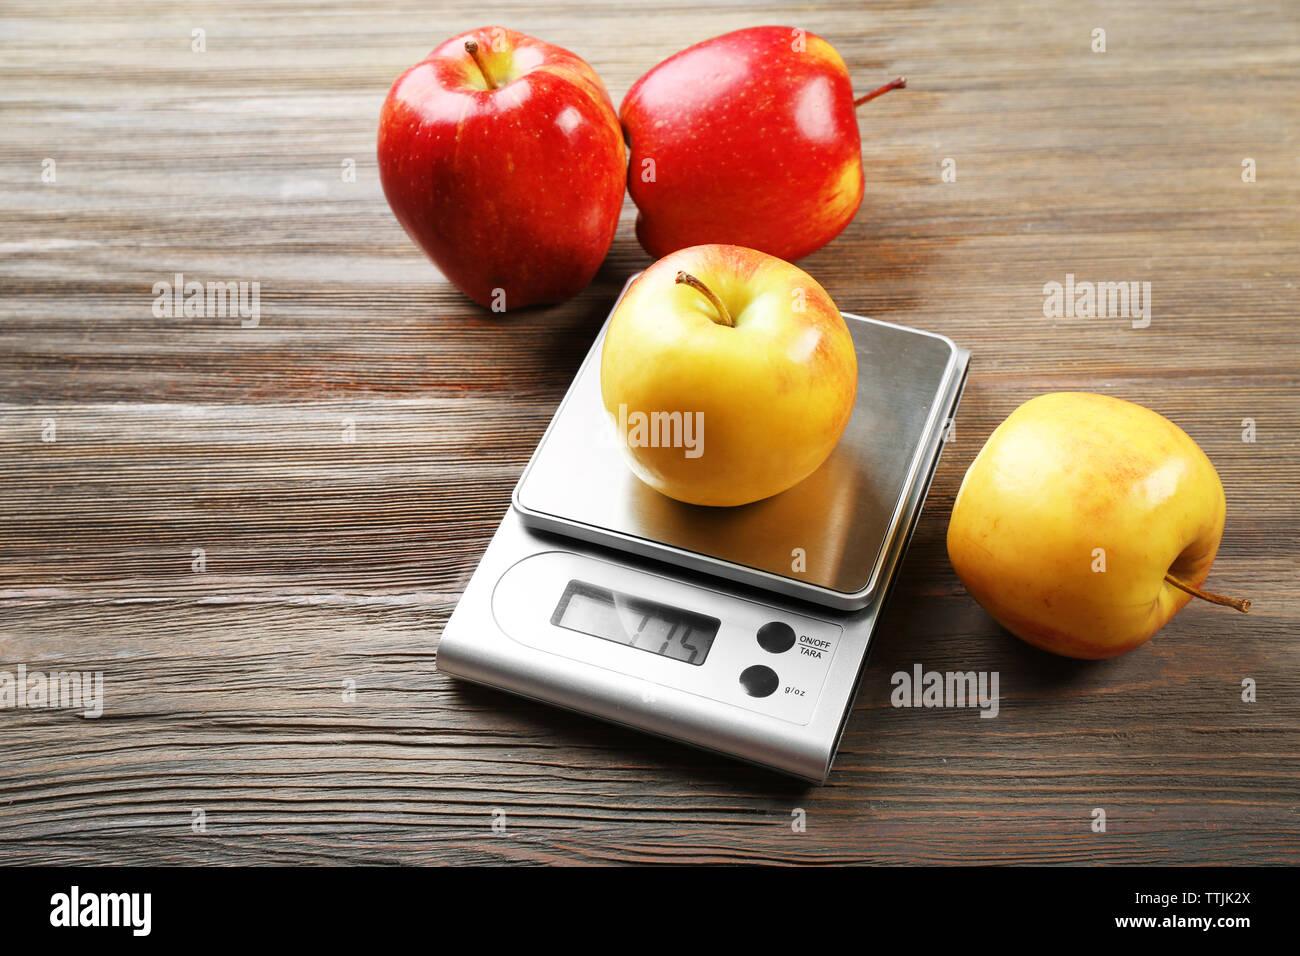 Apples with digital kitchen scales on wooden background - Stock Image